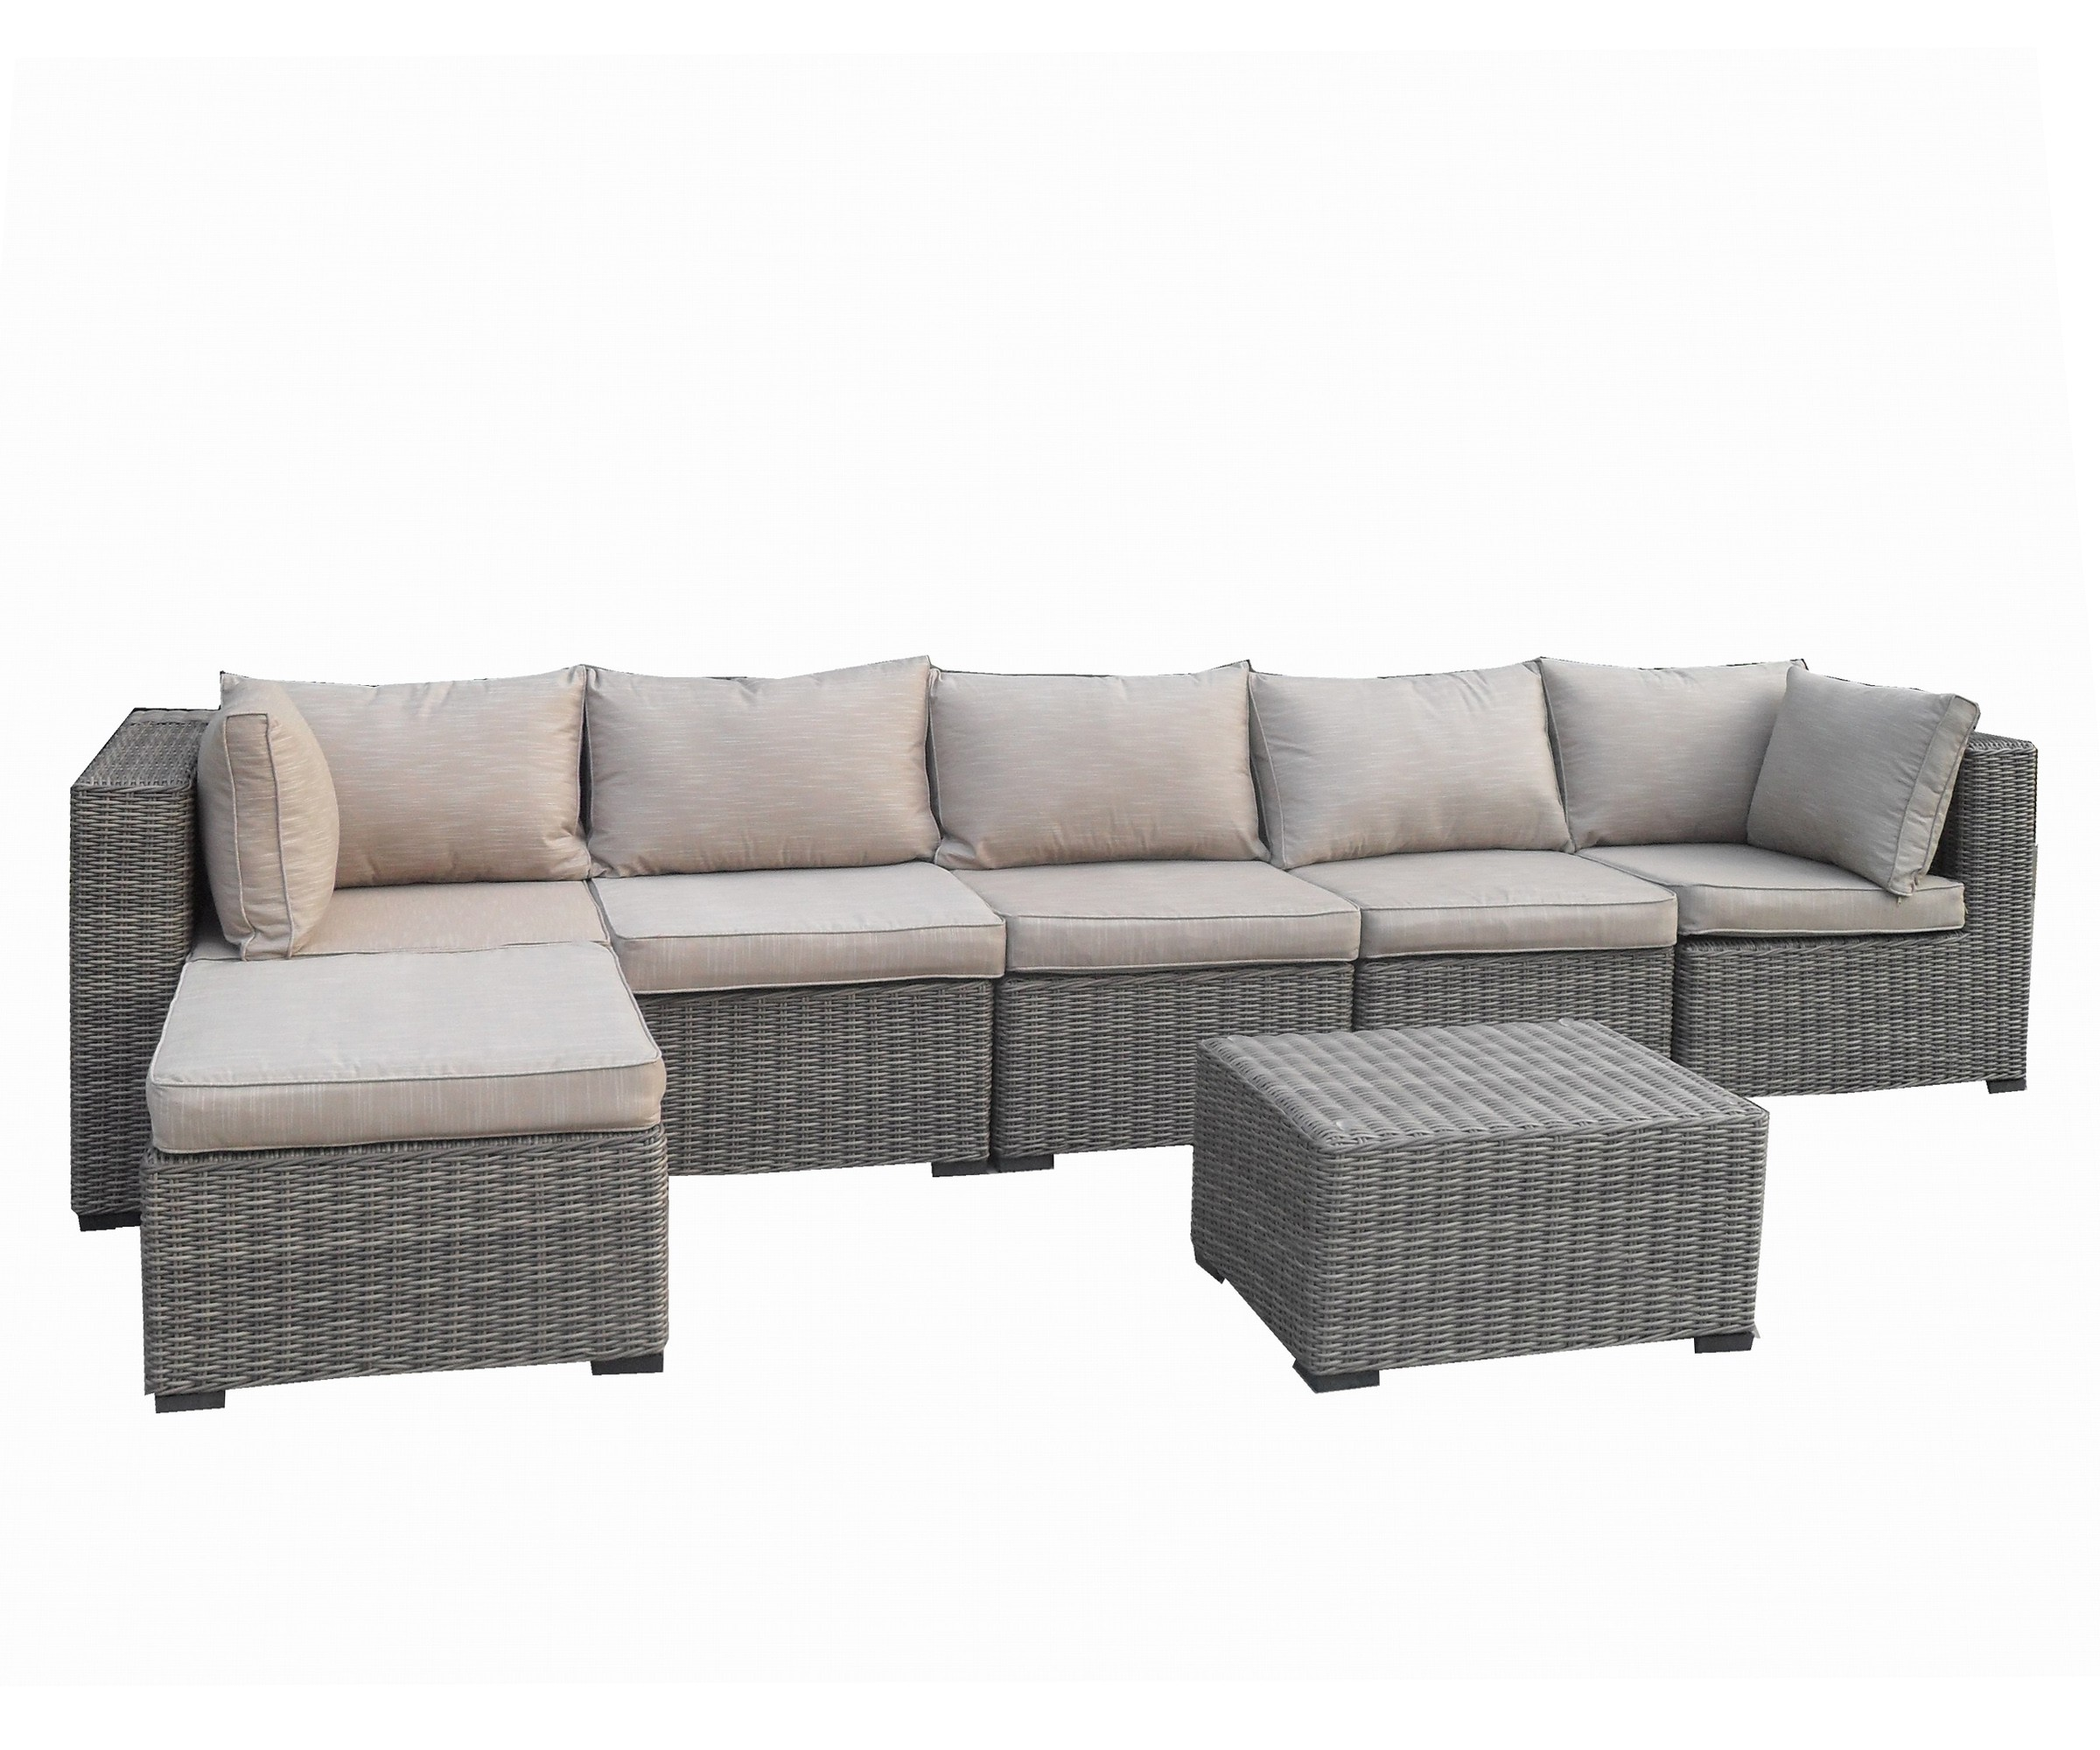 Outlet Muebles De Jardin Conjunto De Jardin Baratos Perfect Set De Muebles De Jardin